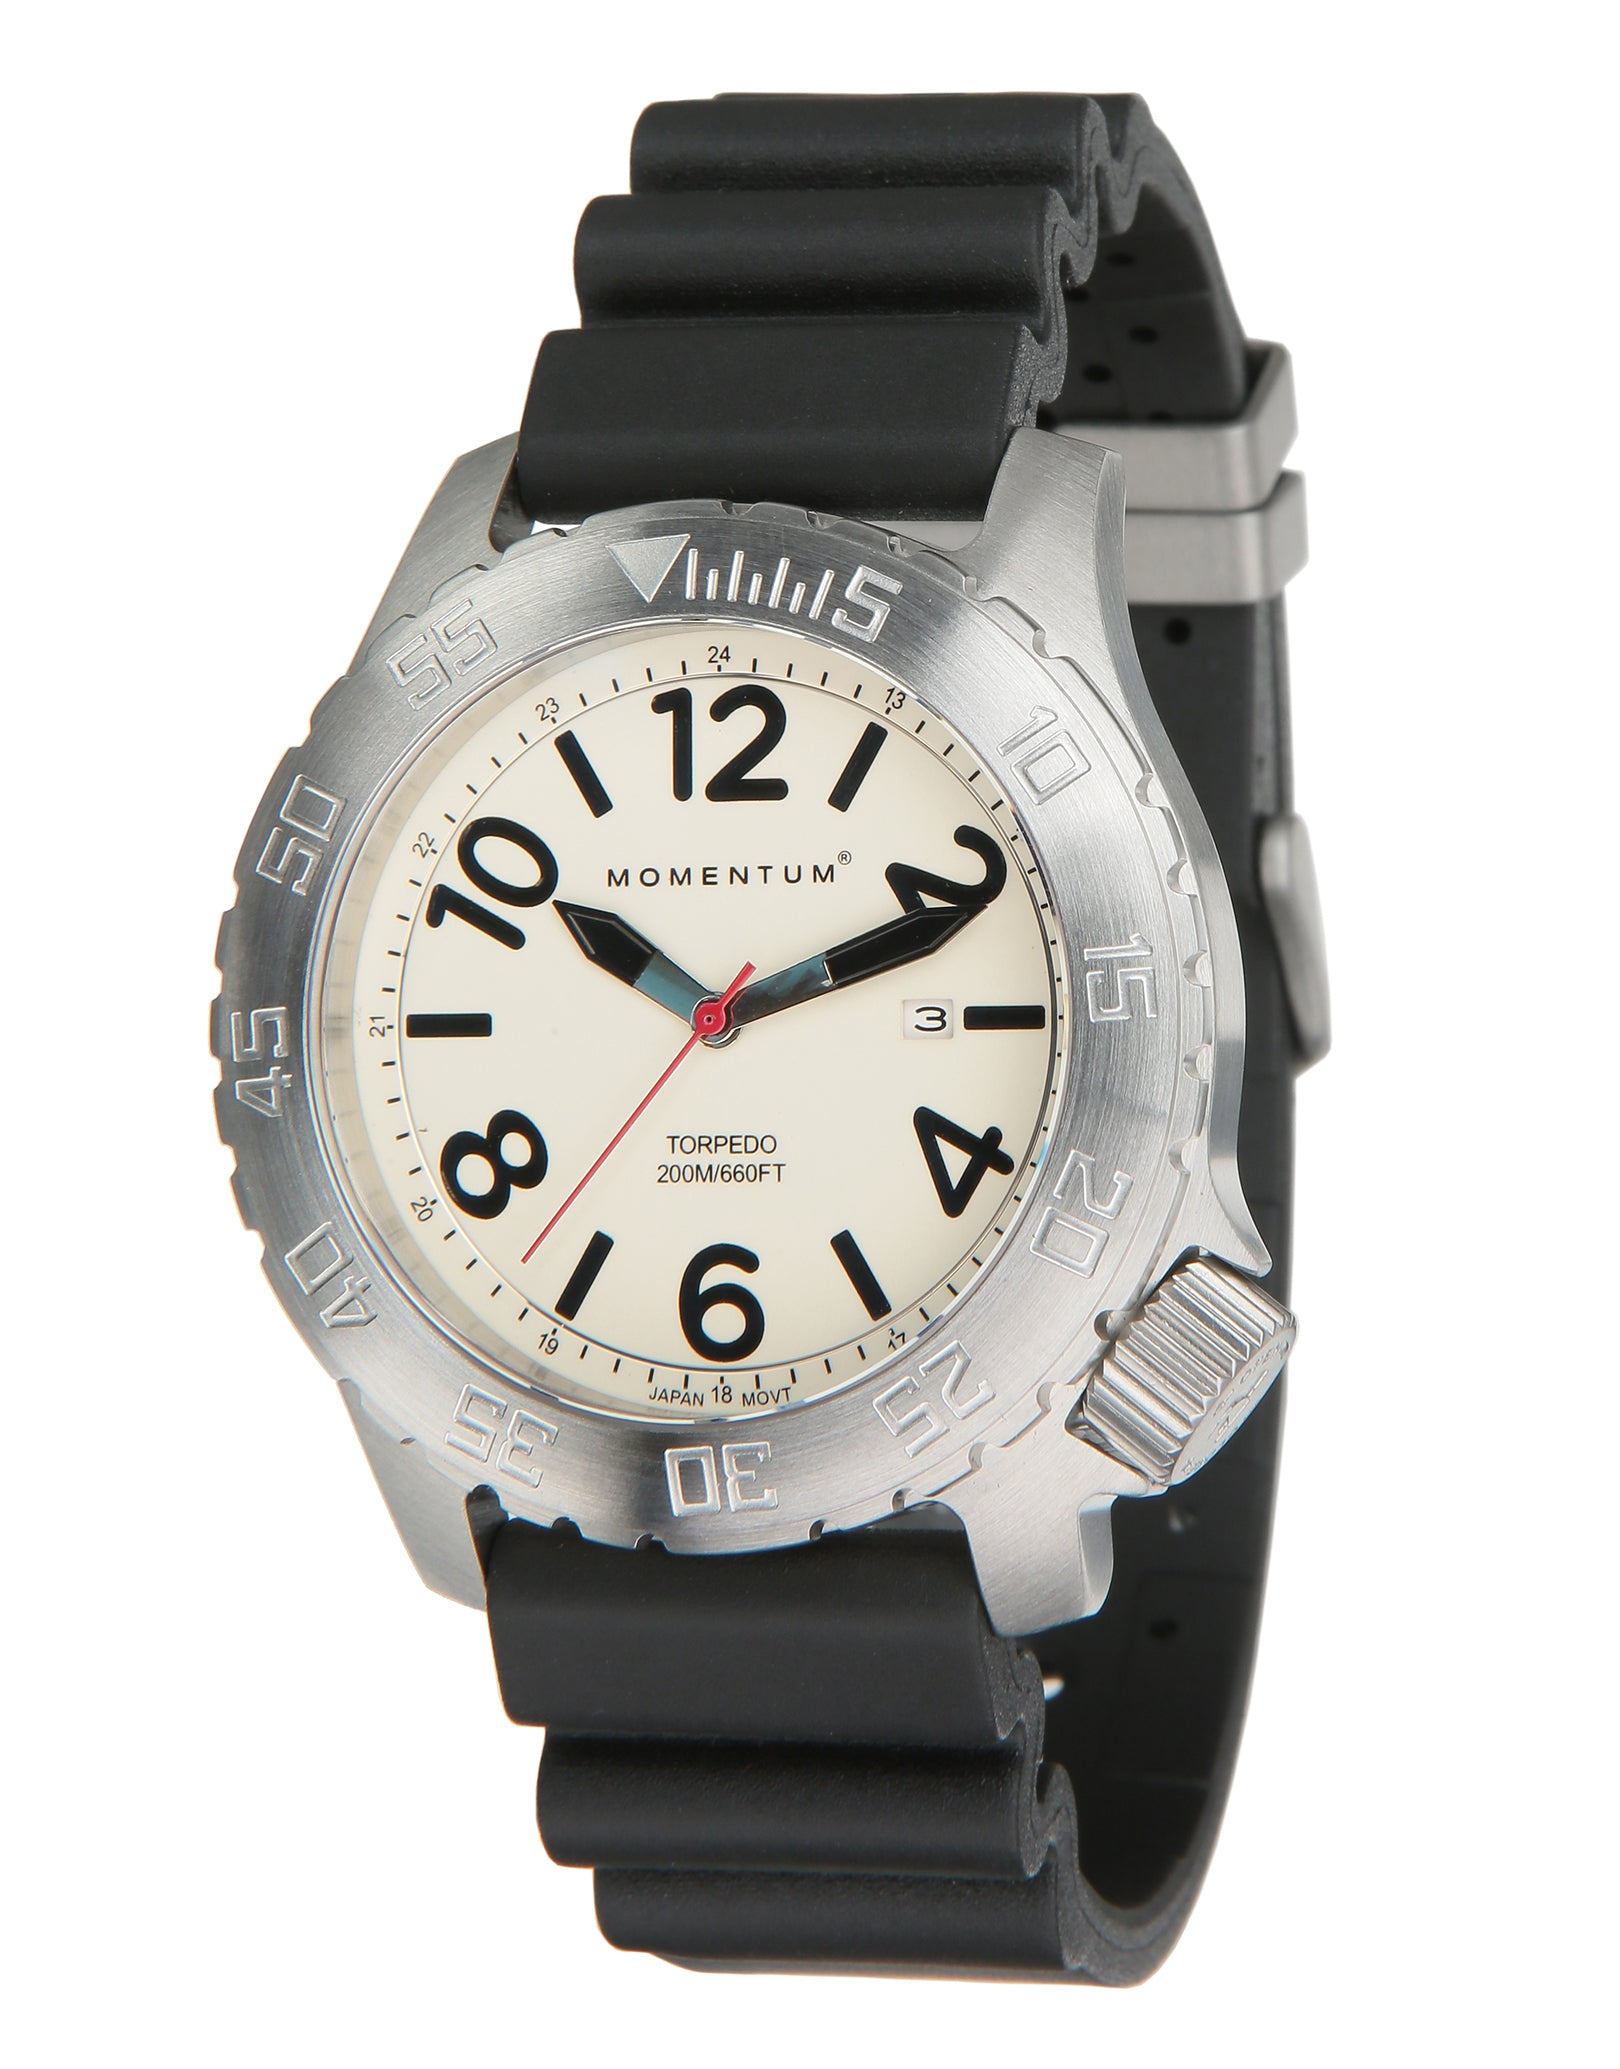 Image of Momentum Torpedo Rubber Watch - Black Face / Rubber Strap